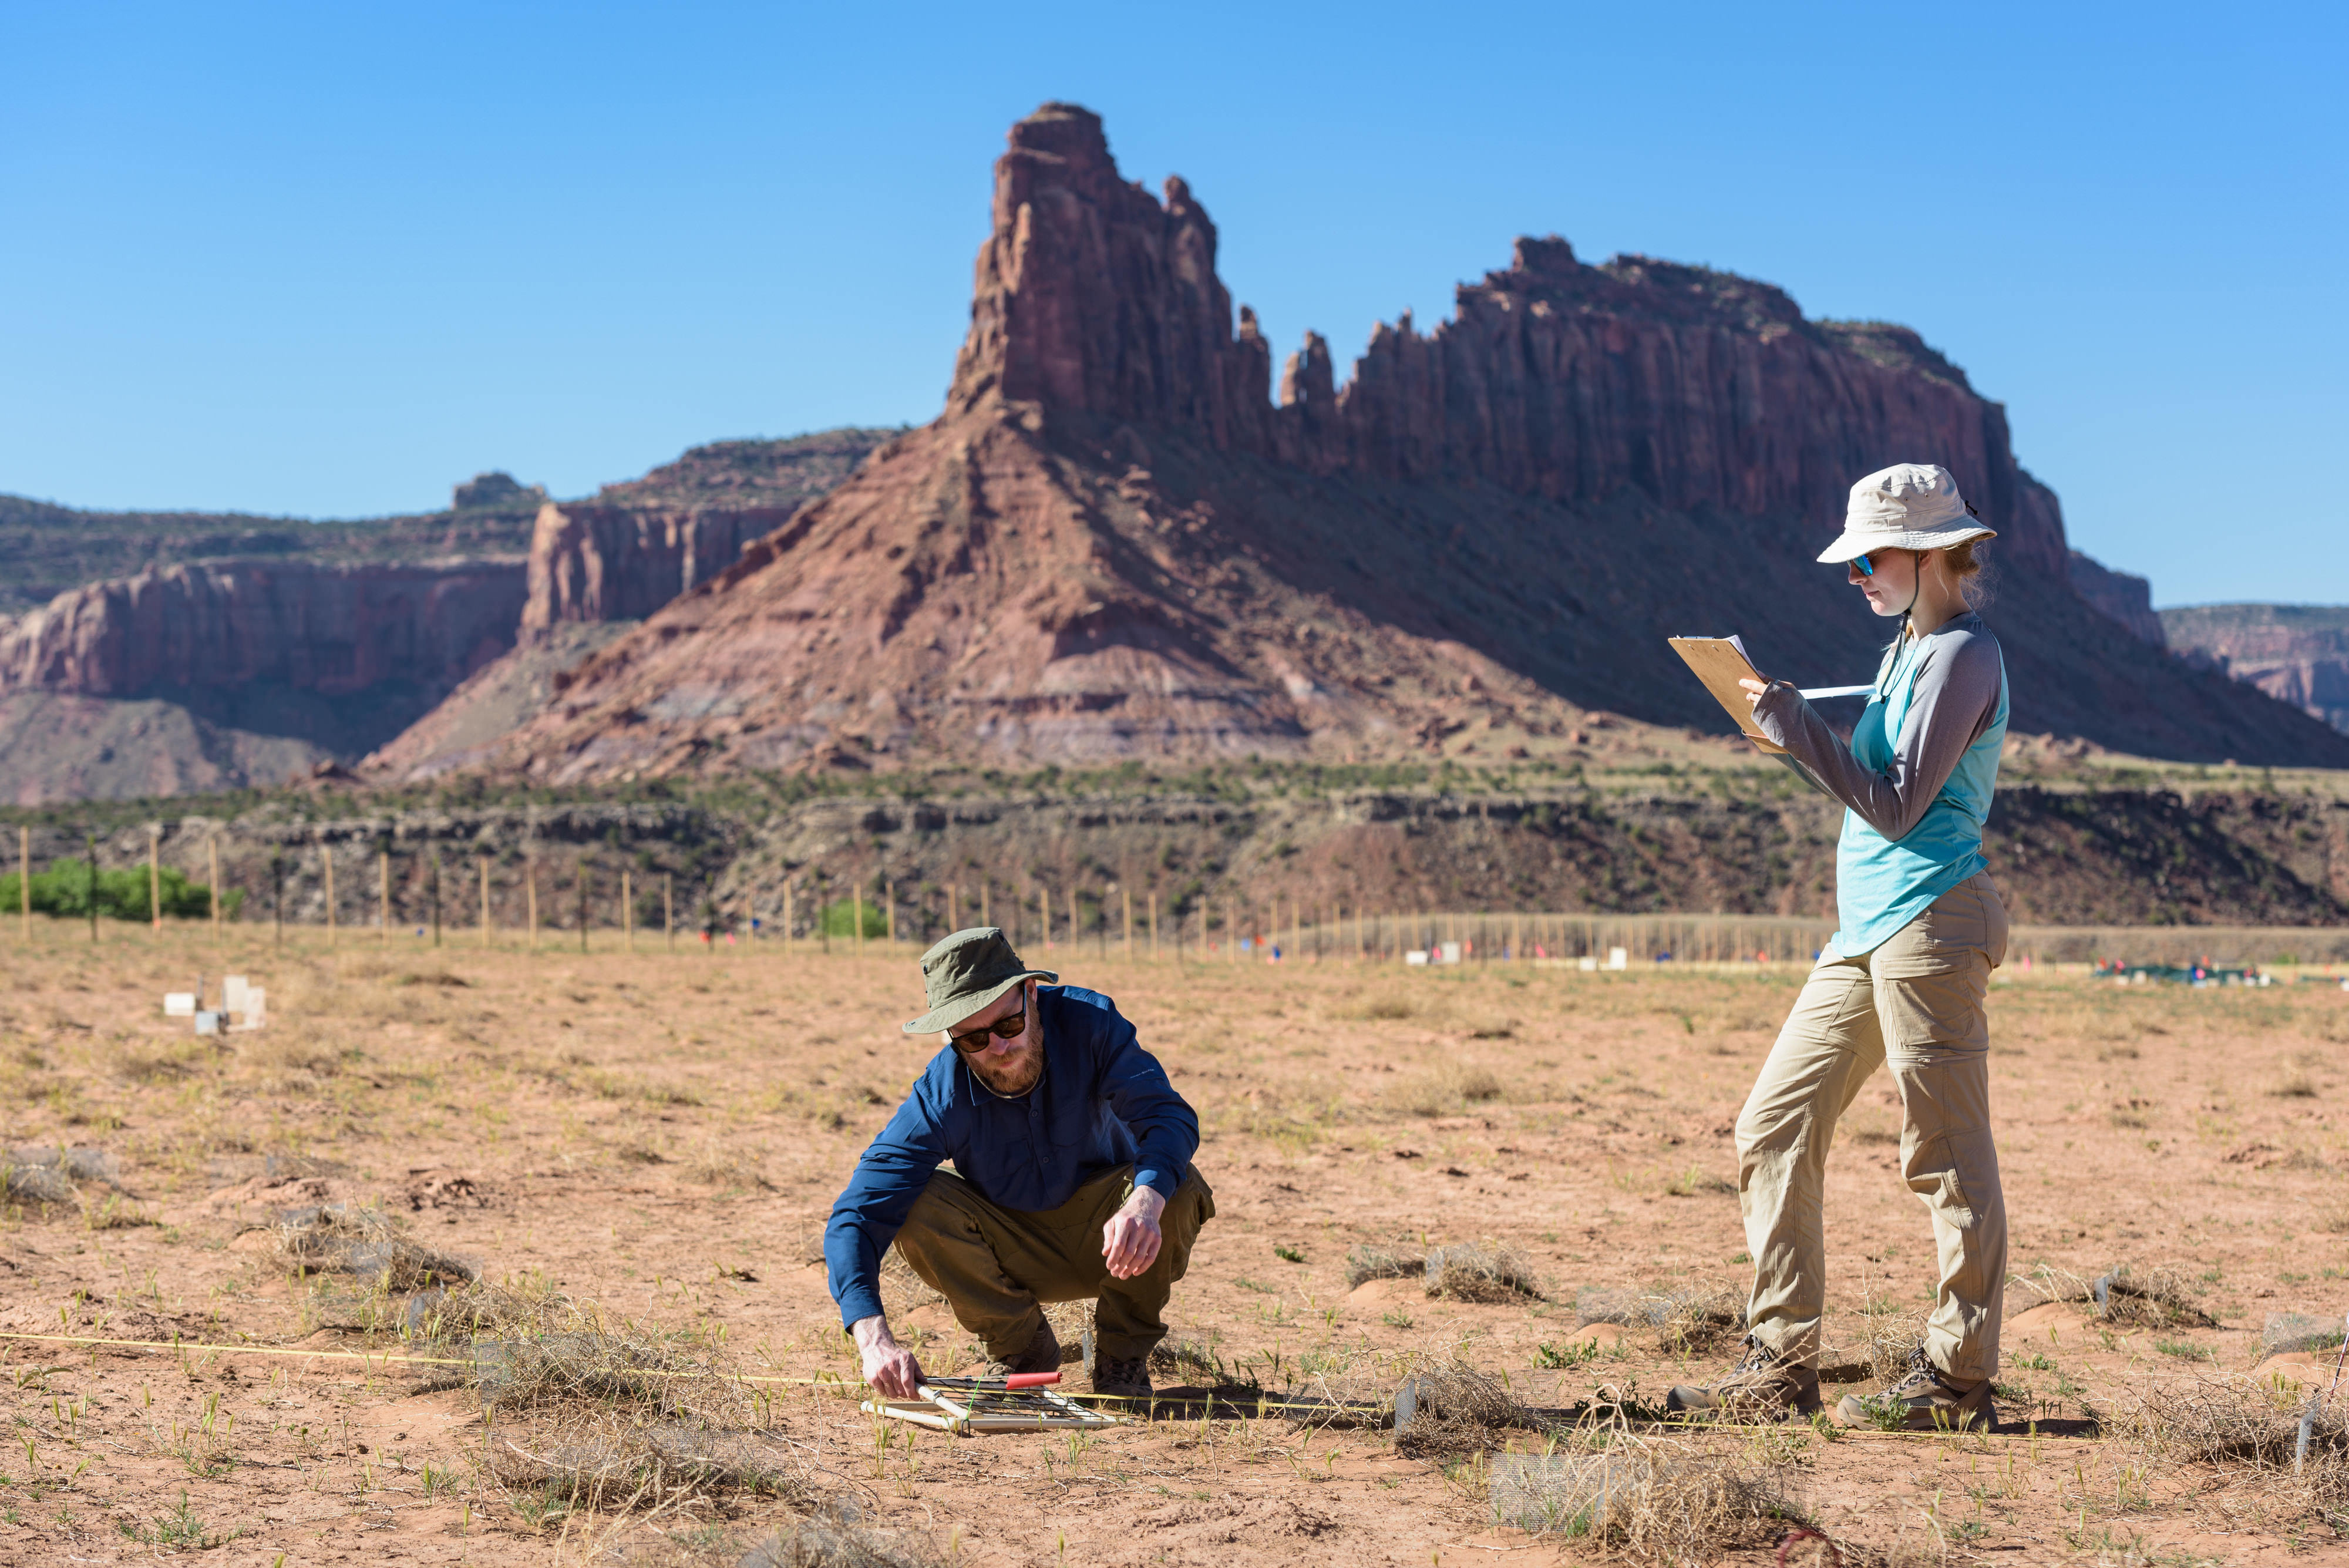 Two scientists measuring specimens in the desert.